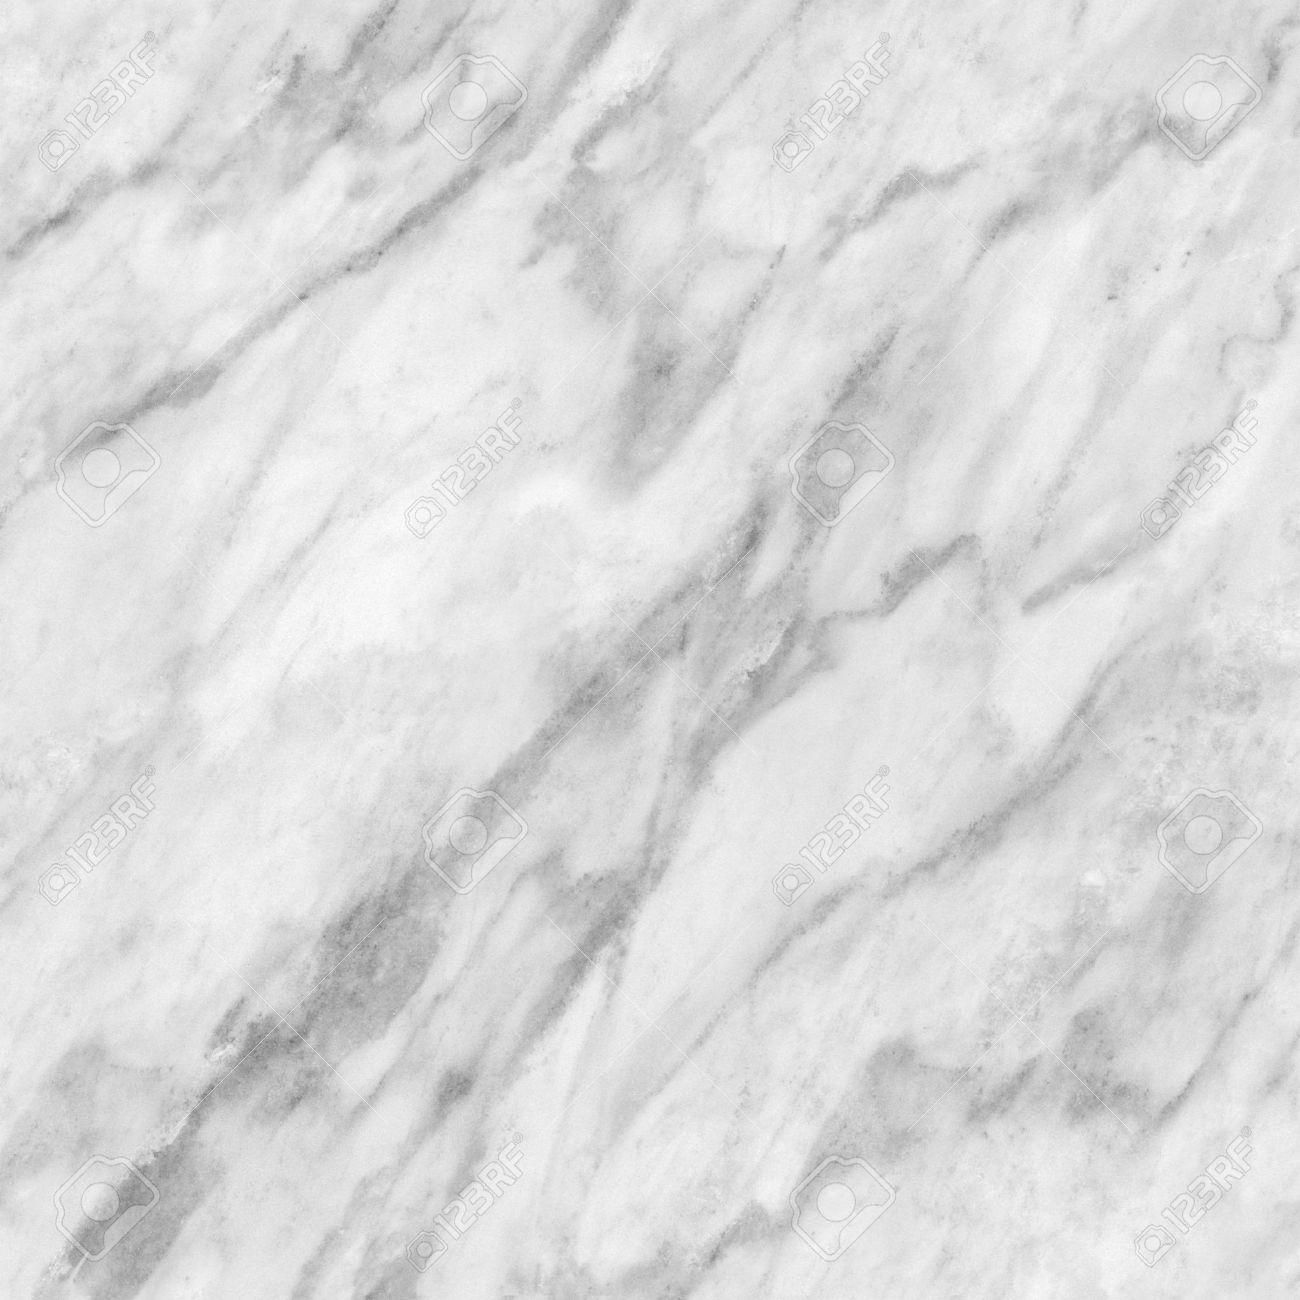 white marble texture background (High resolution) Stock Photo - 7556276